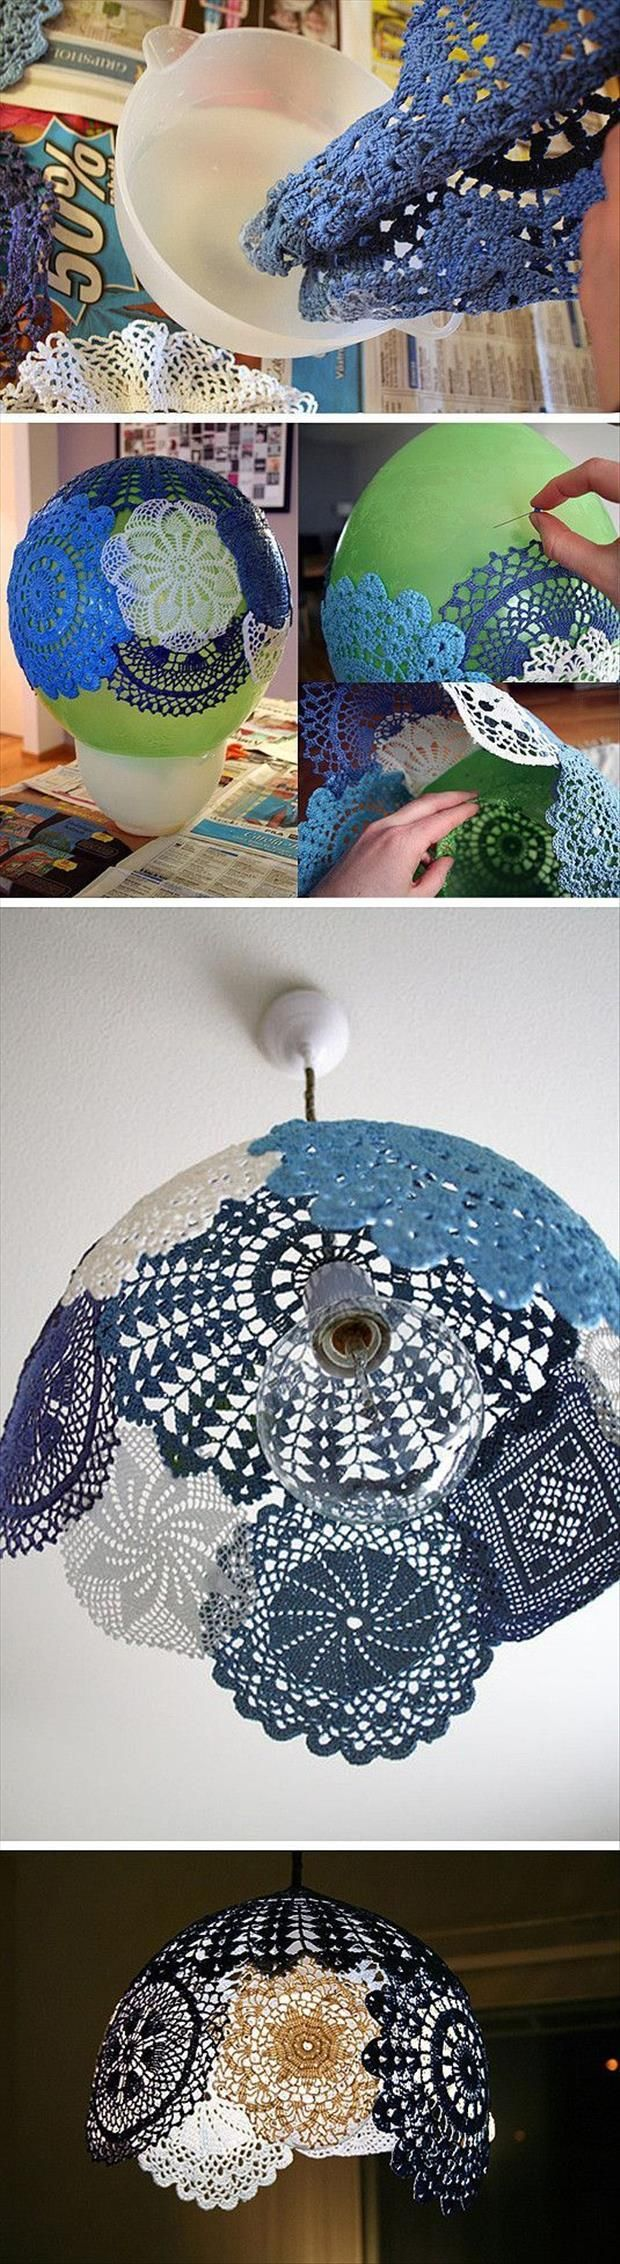 Fun do it yourself craft ideas 48 pics daily update on my website fun do it yourself craft ideas 48 pics daily update on my website solutioingenieria Choice Image